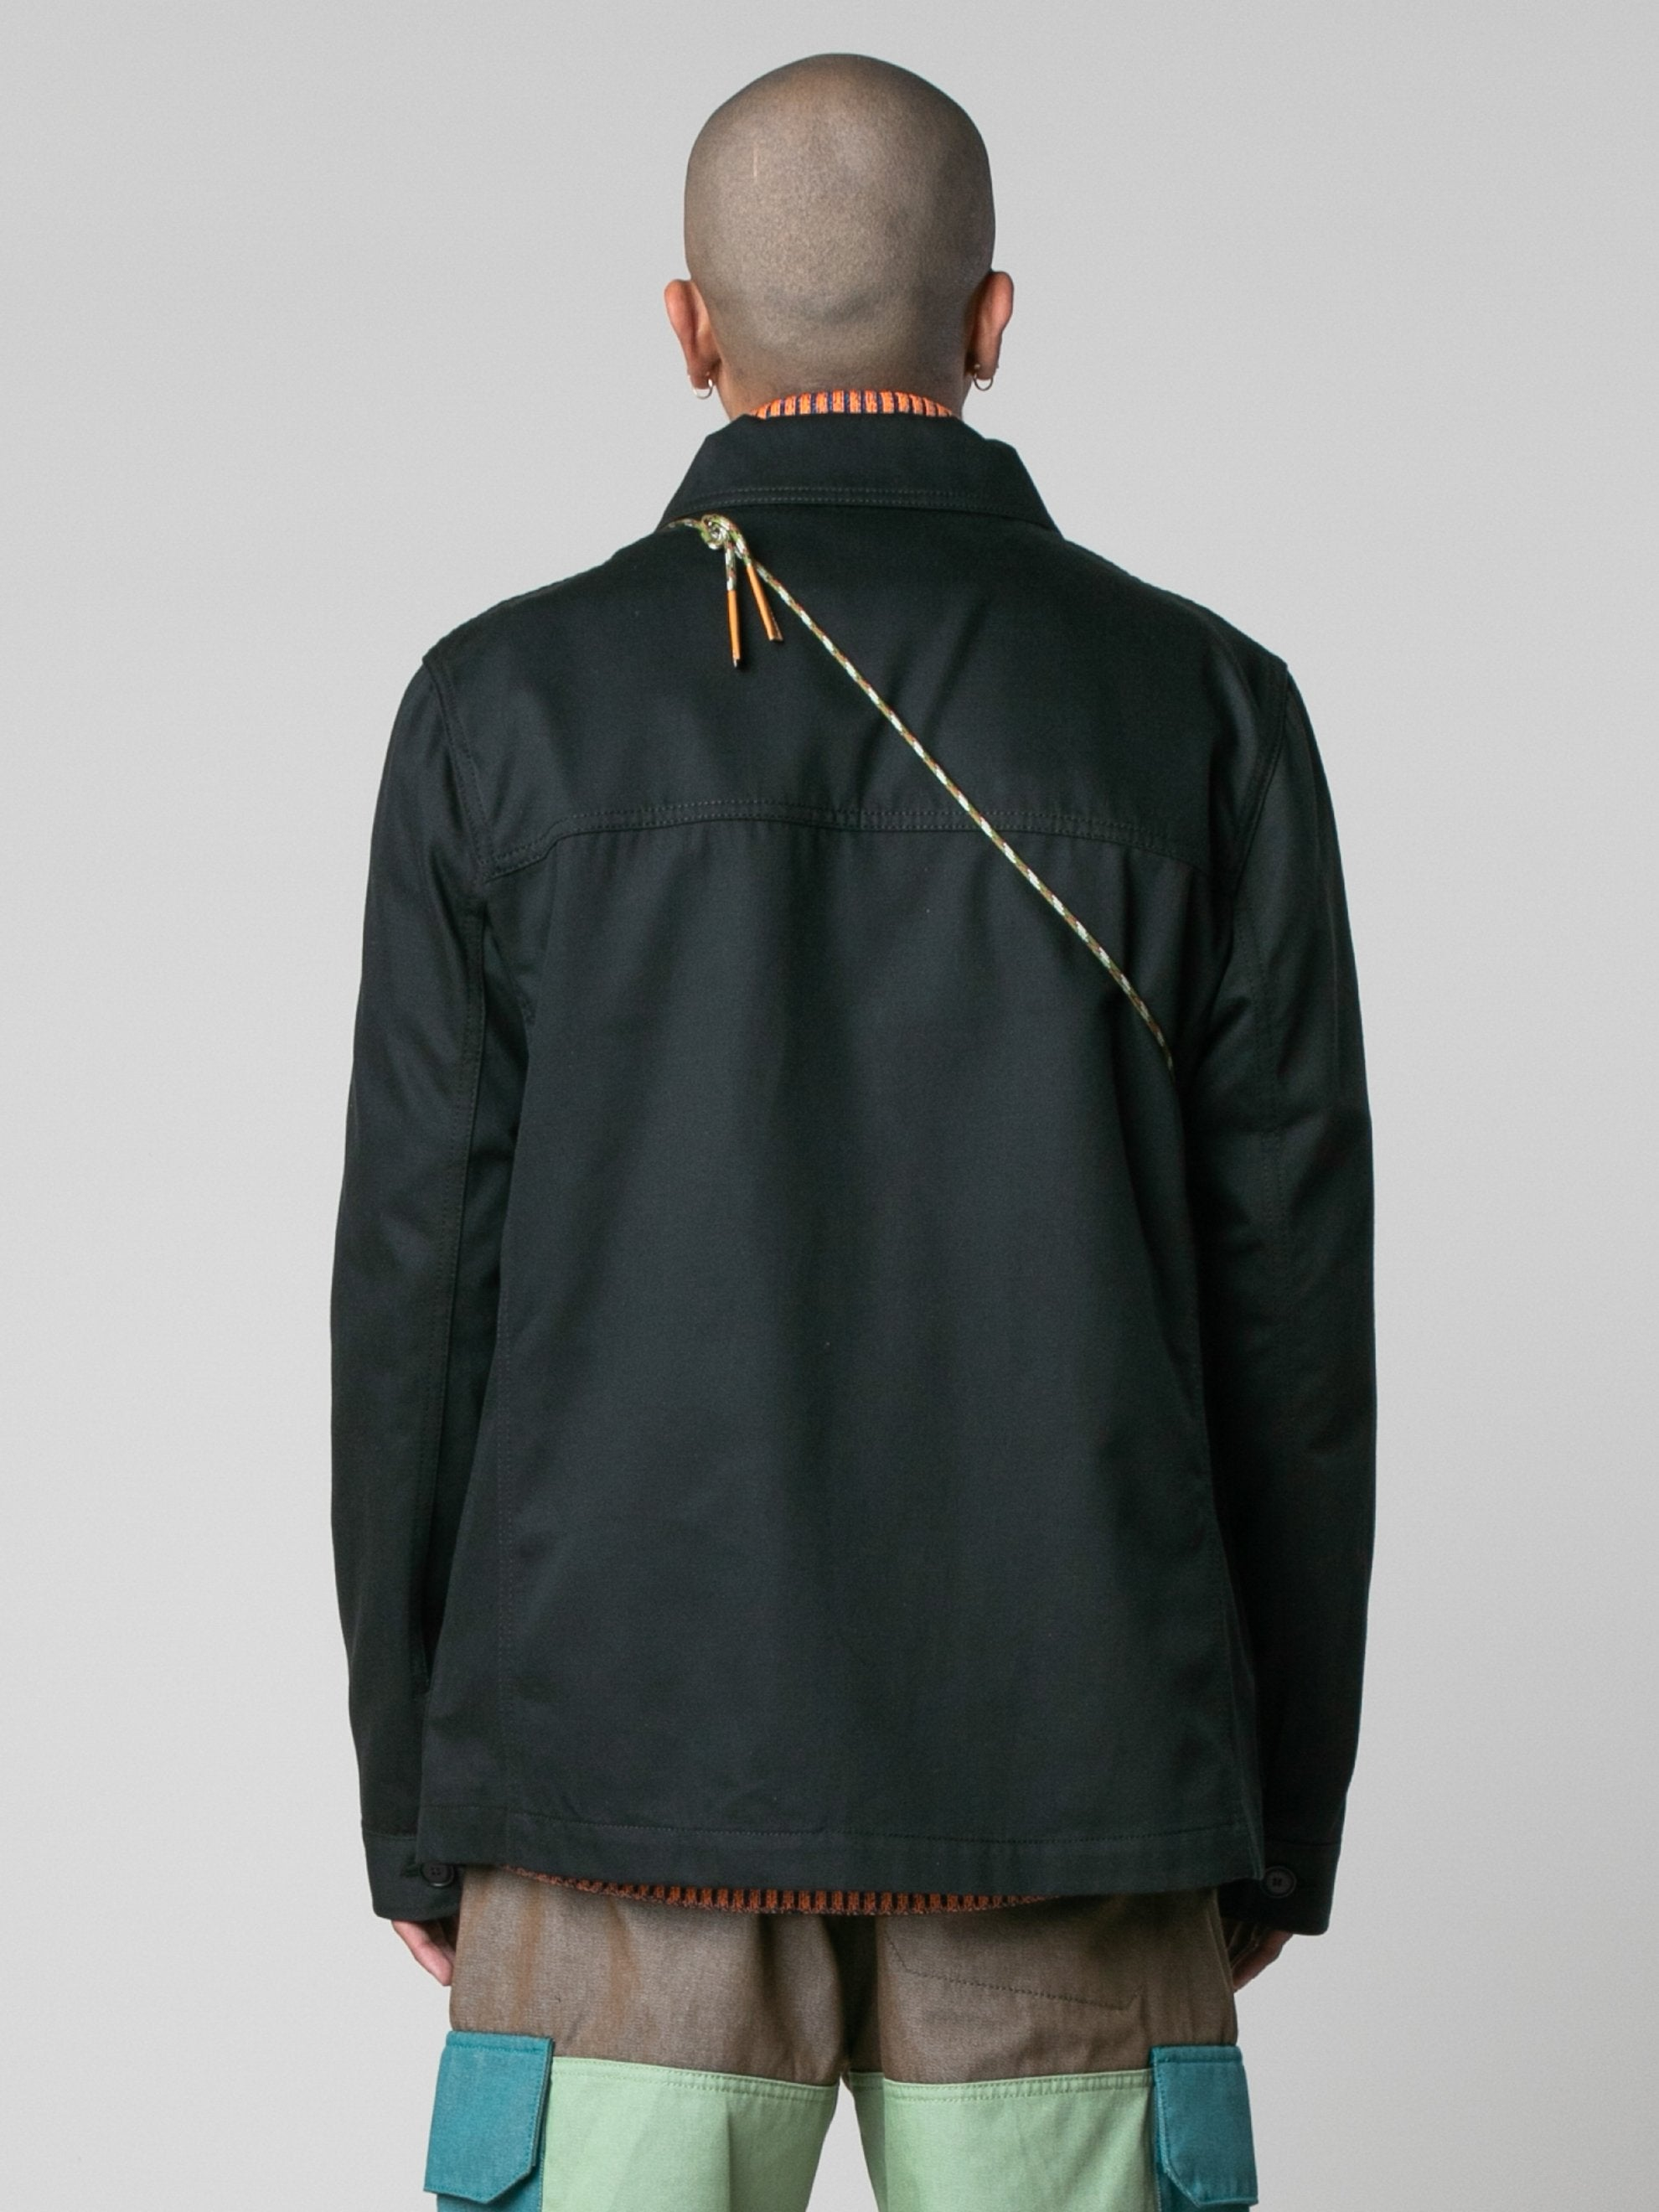 ELN Workwear Jacket